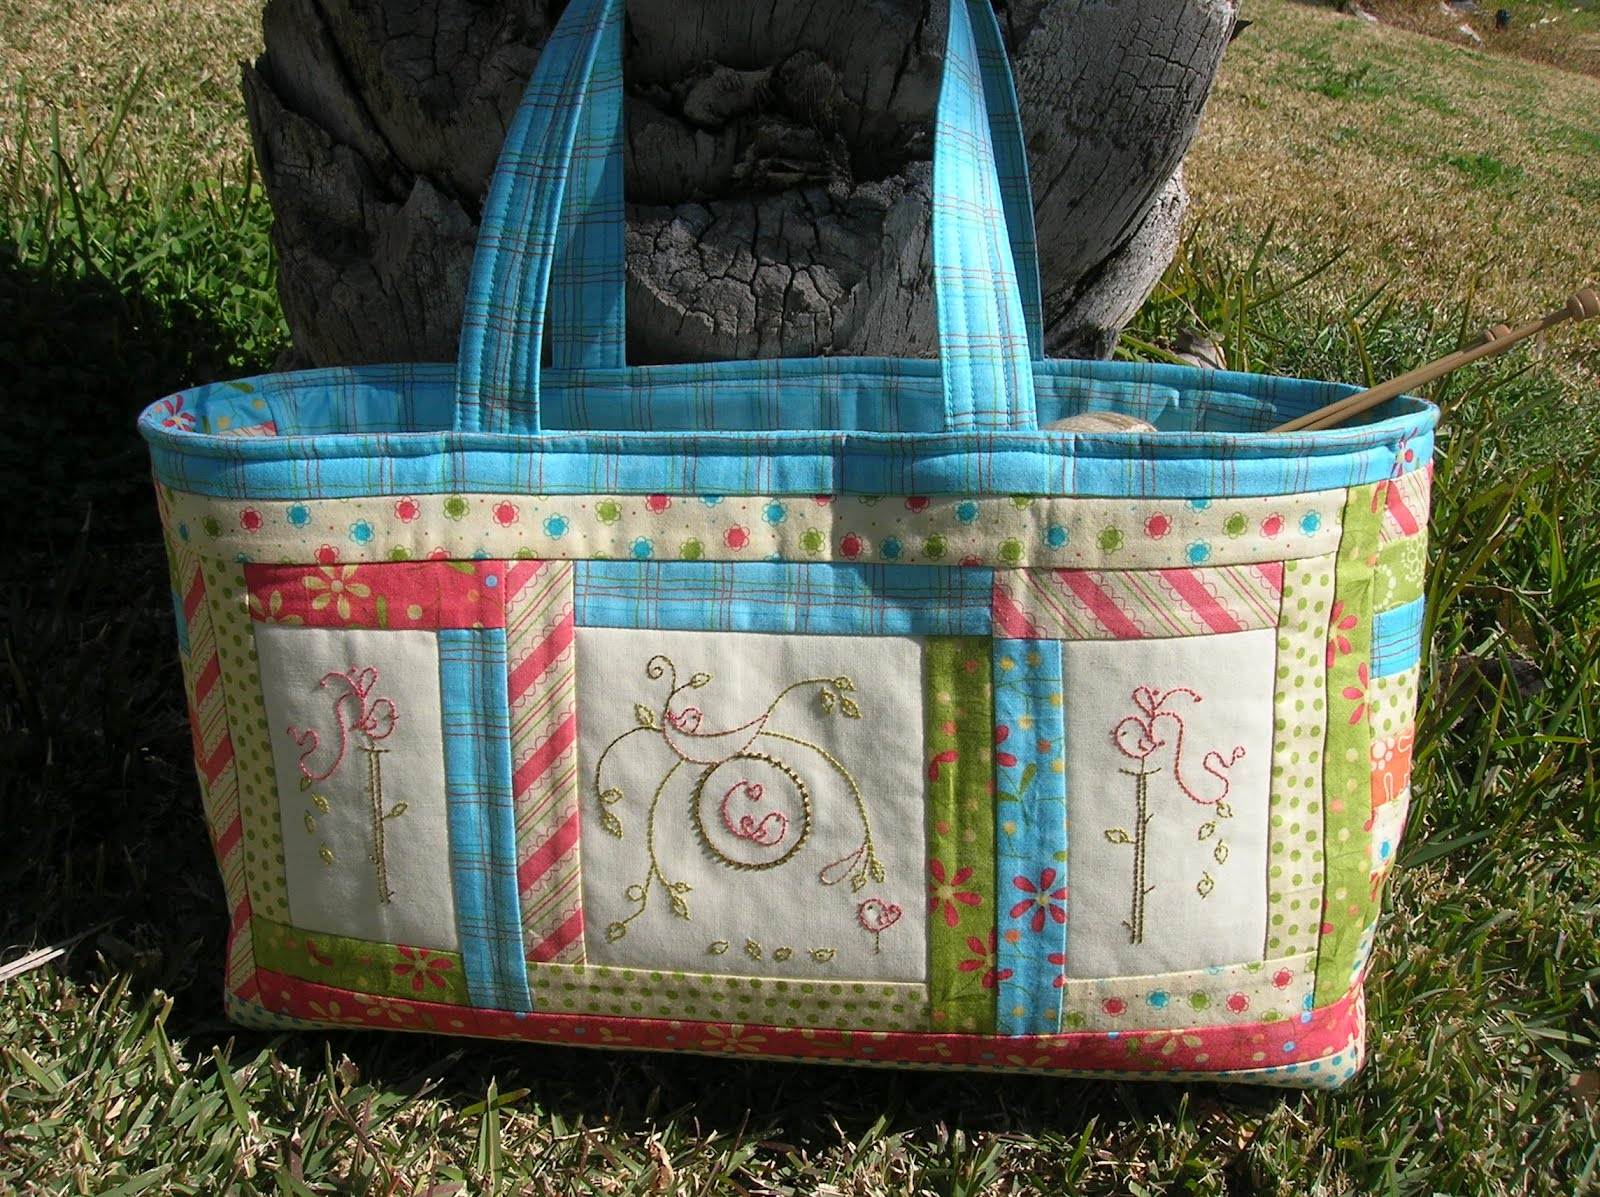 A Sampler of Stitches: A Happy Sewing Weekend